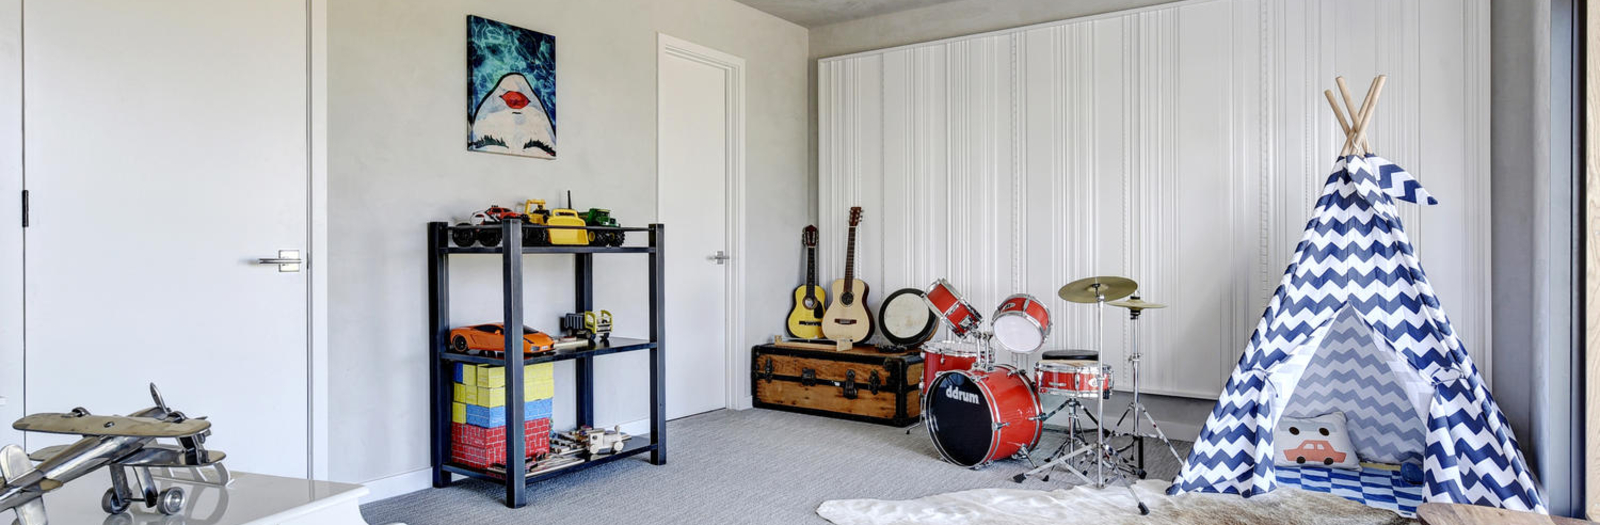 Eclectic Kids Room with decorative white wall panel